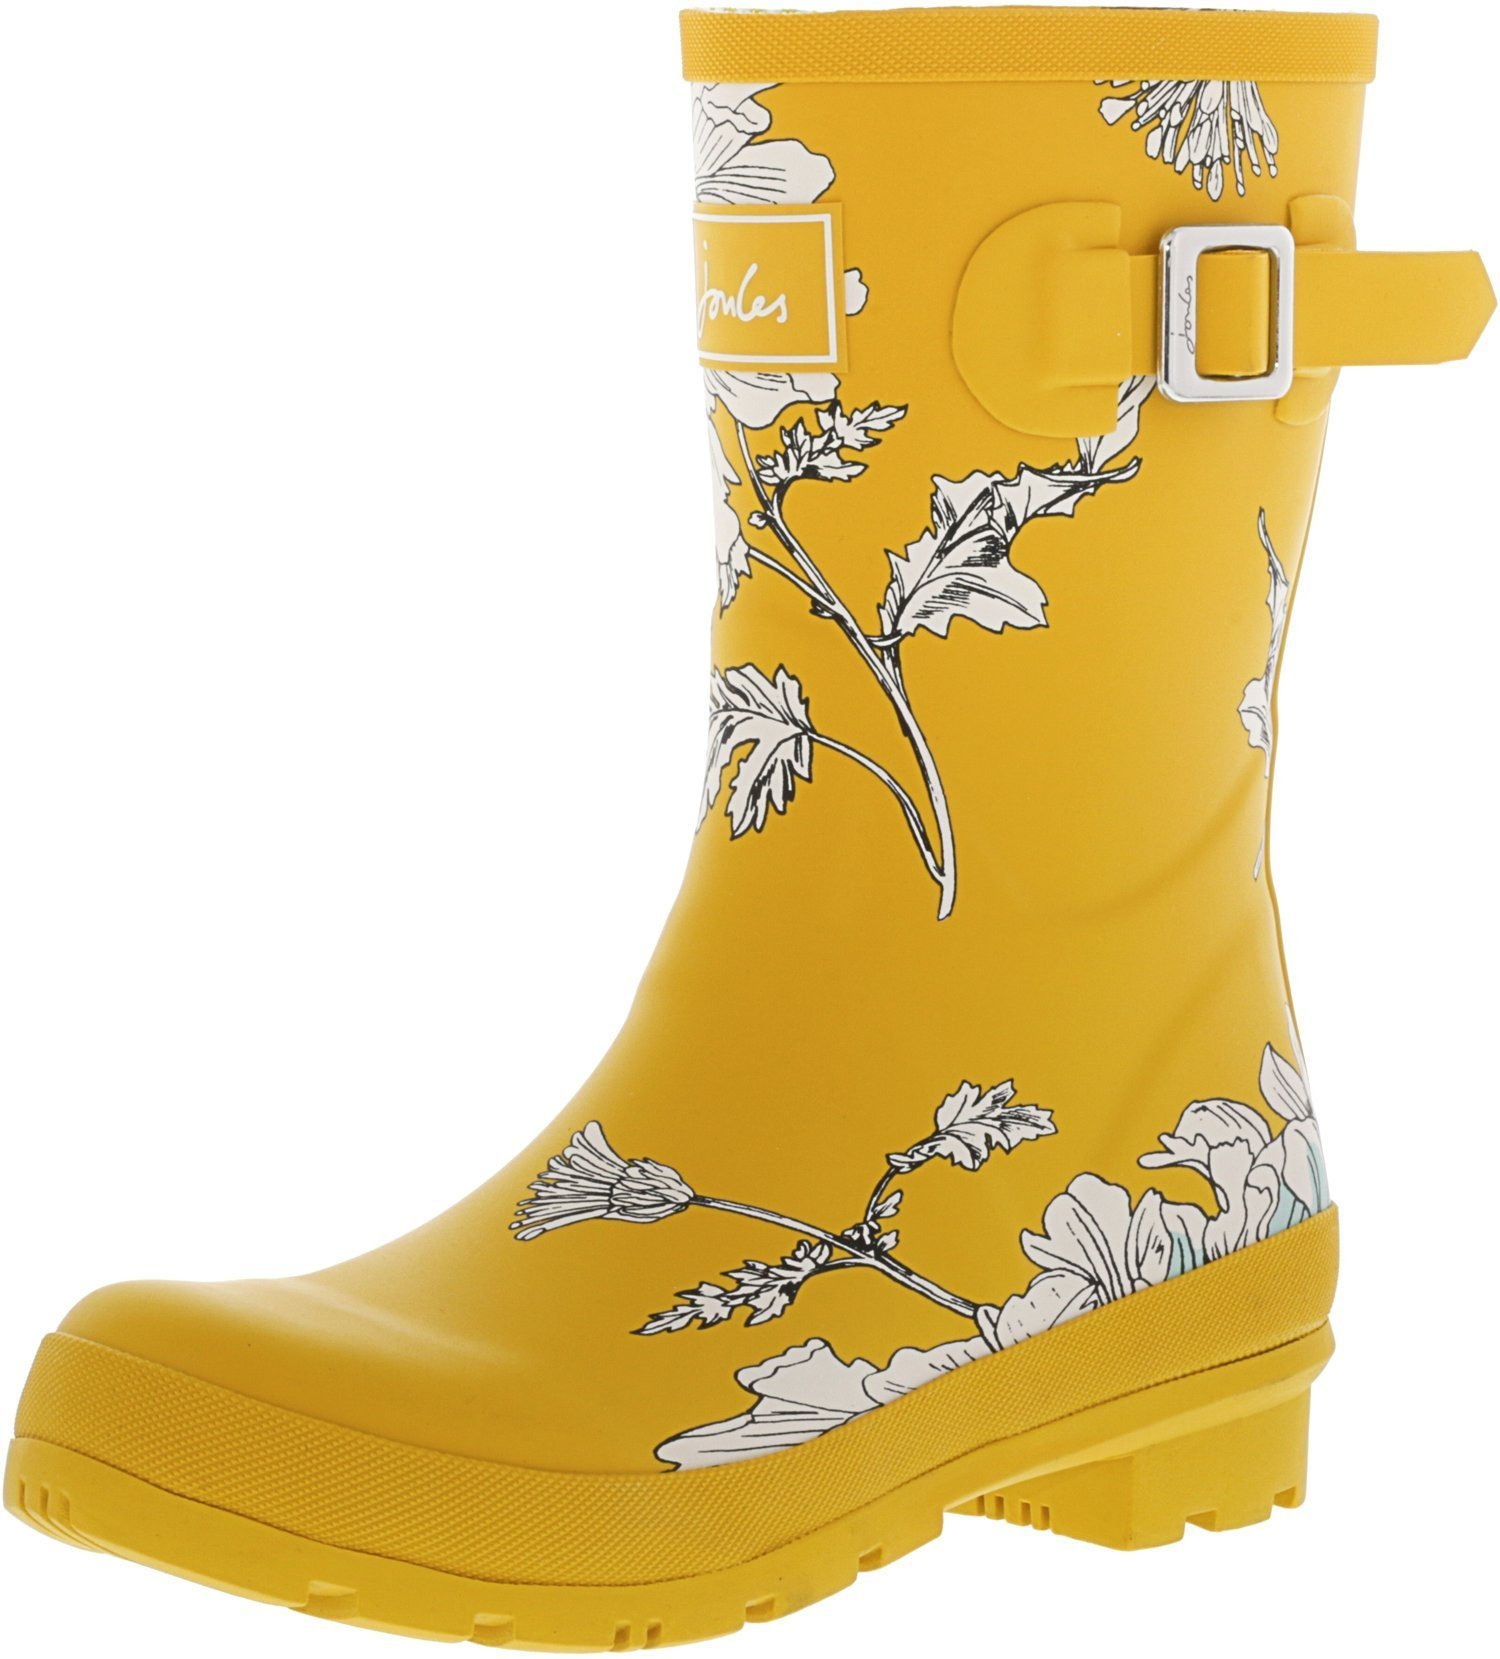 Joules Womens Short Printed Welly Rain Boots, Antique Gold Flora,7 B(M) US